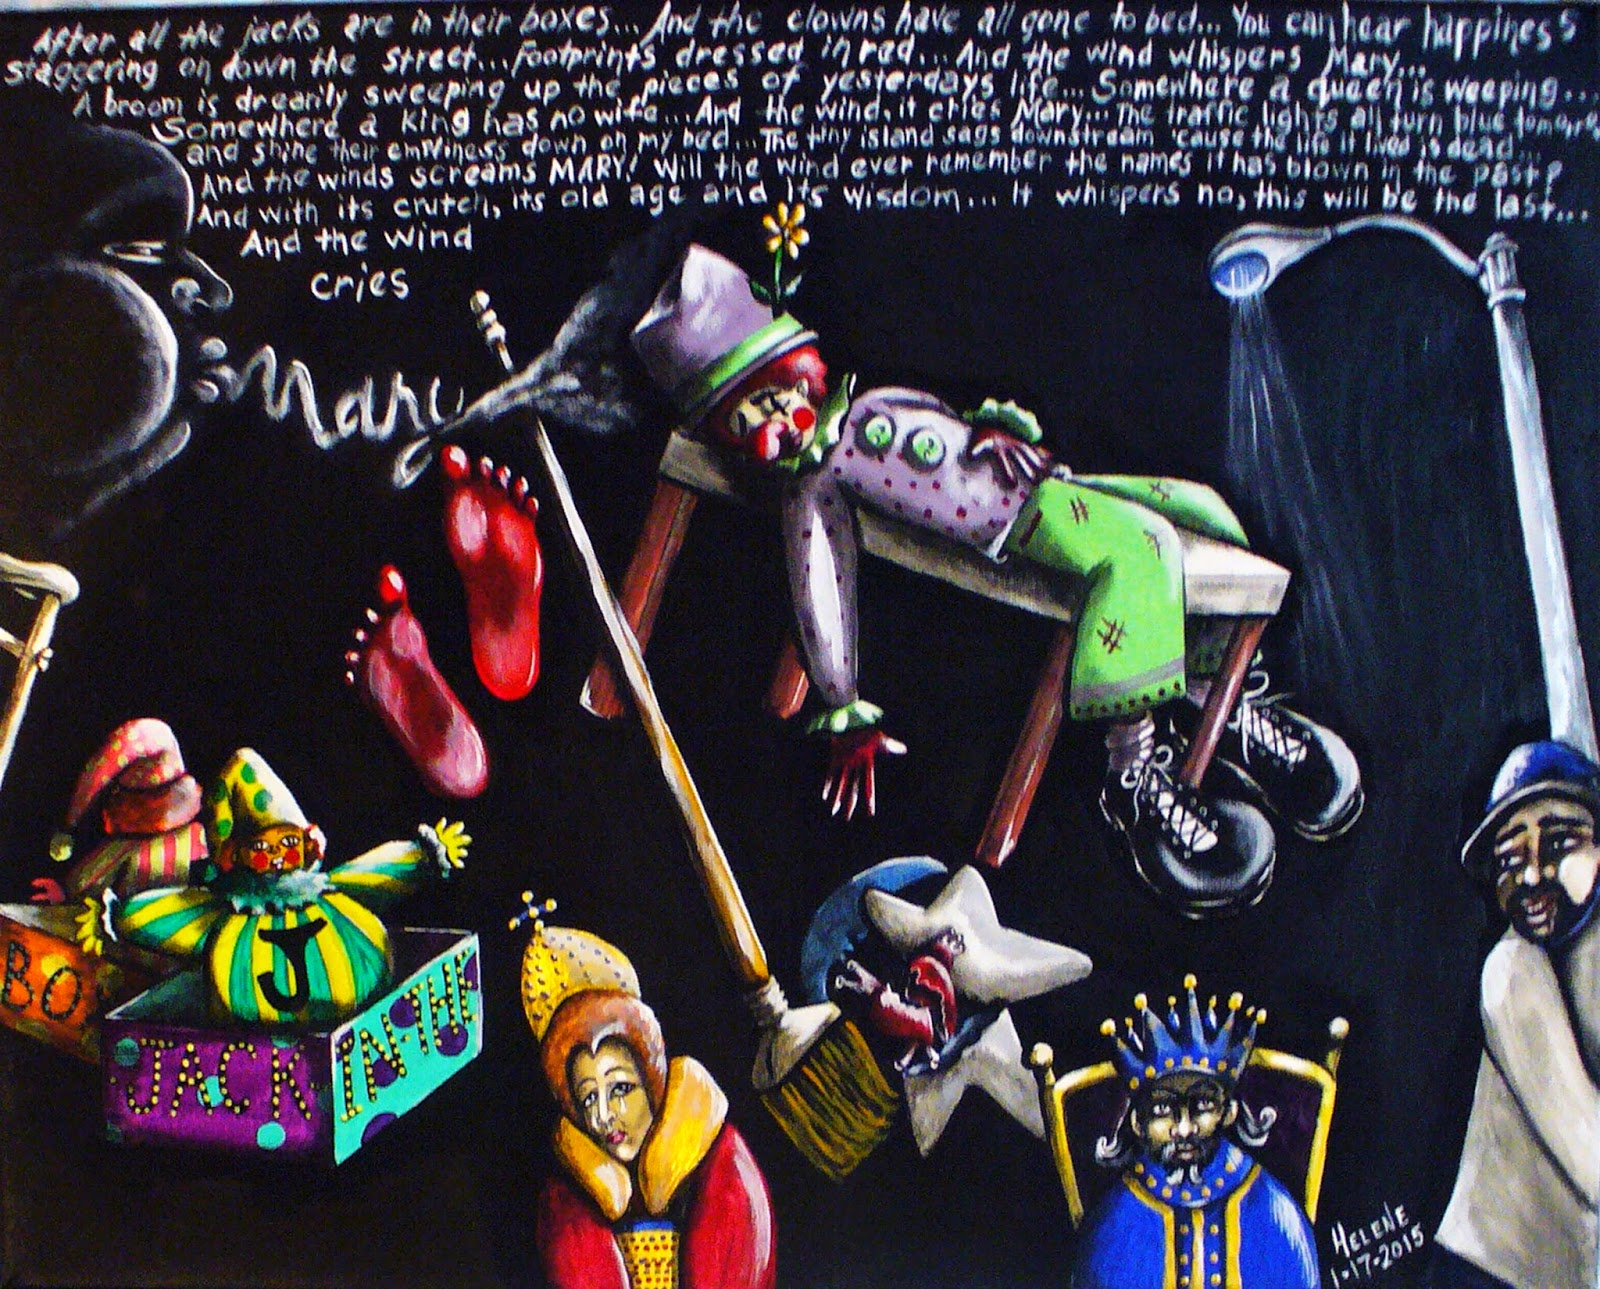 Visual illustration in acrylic paint on black background of characters from the Jimi Hendrix song of the same name